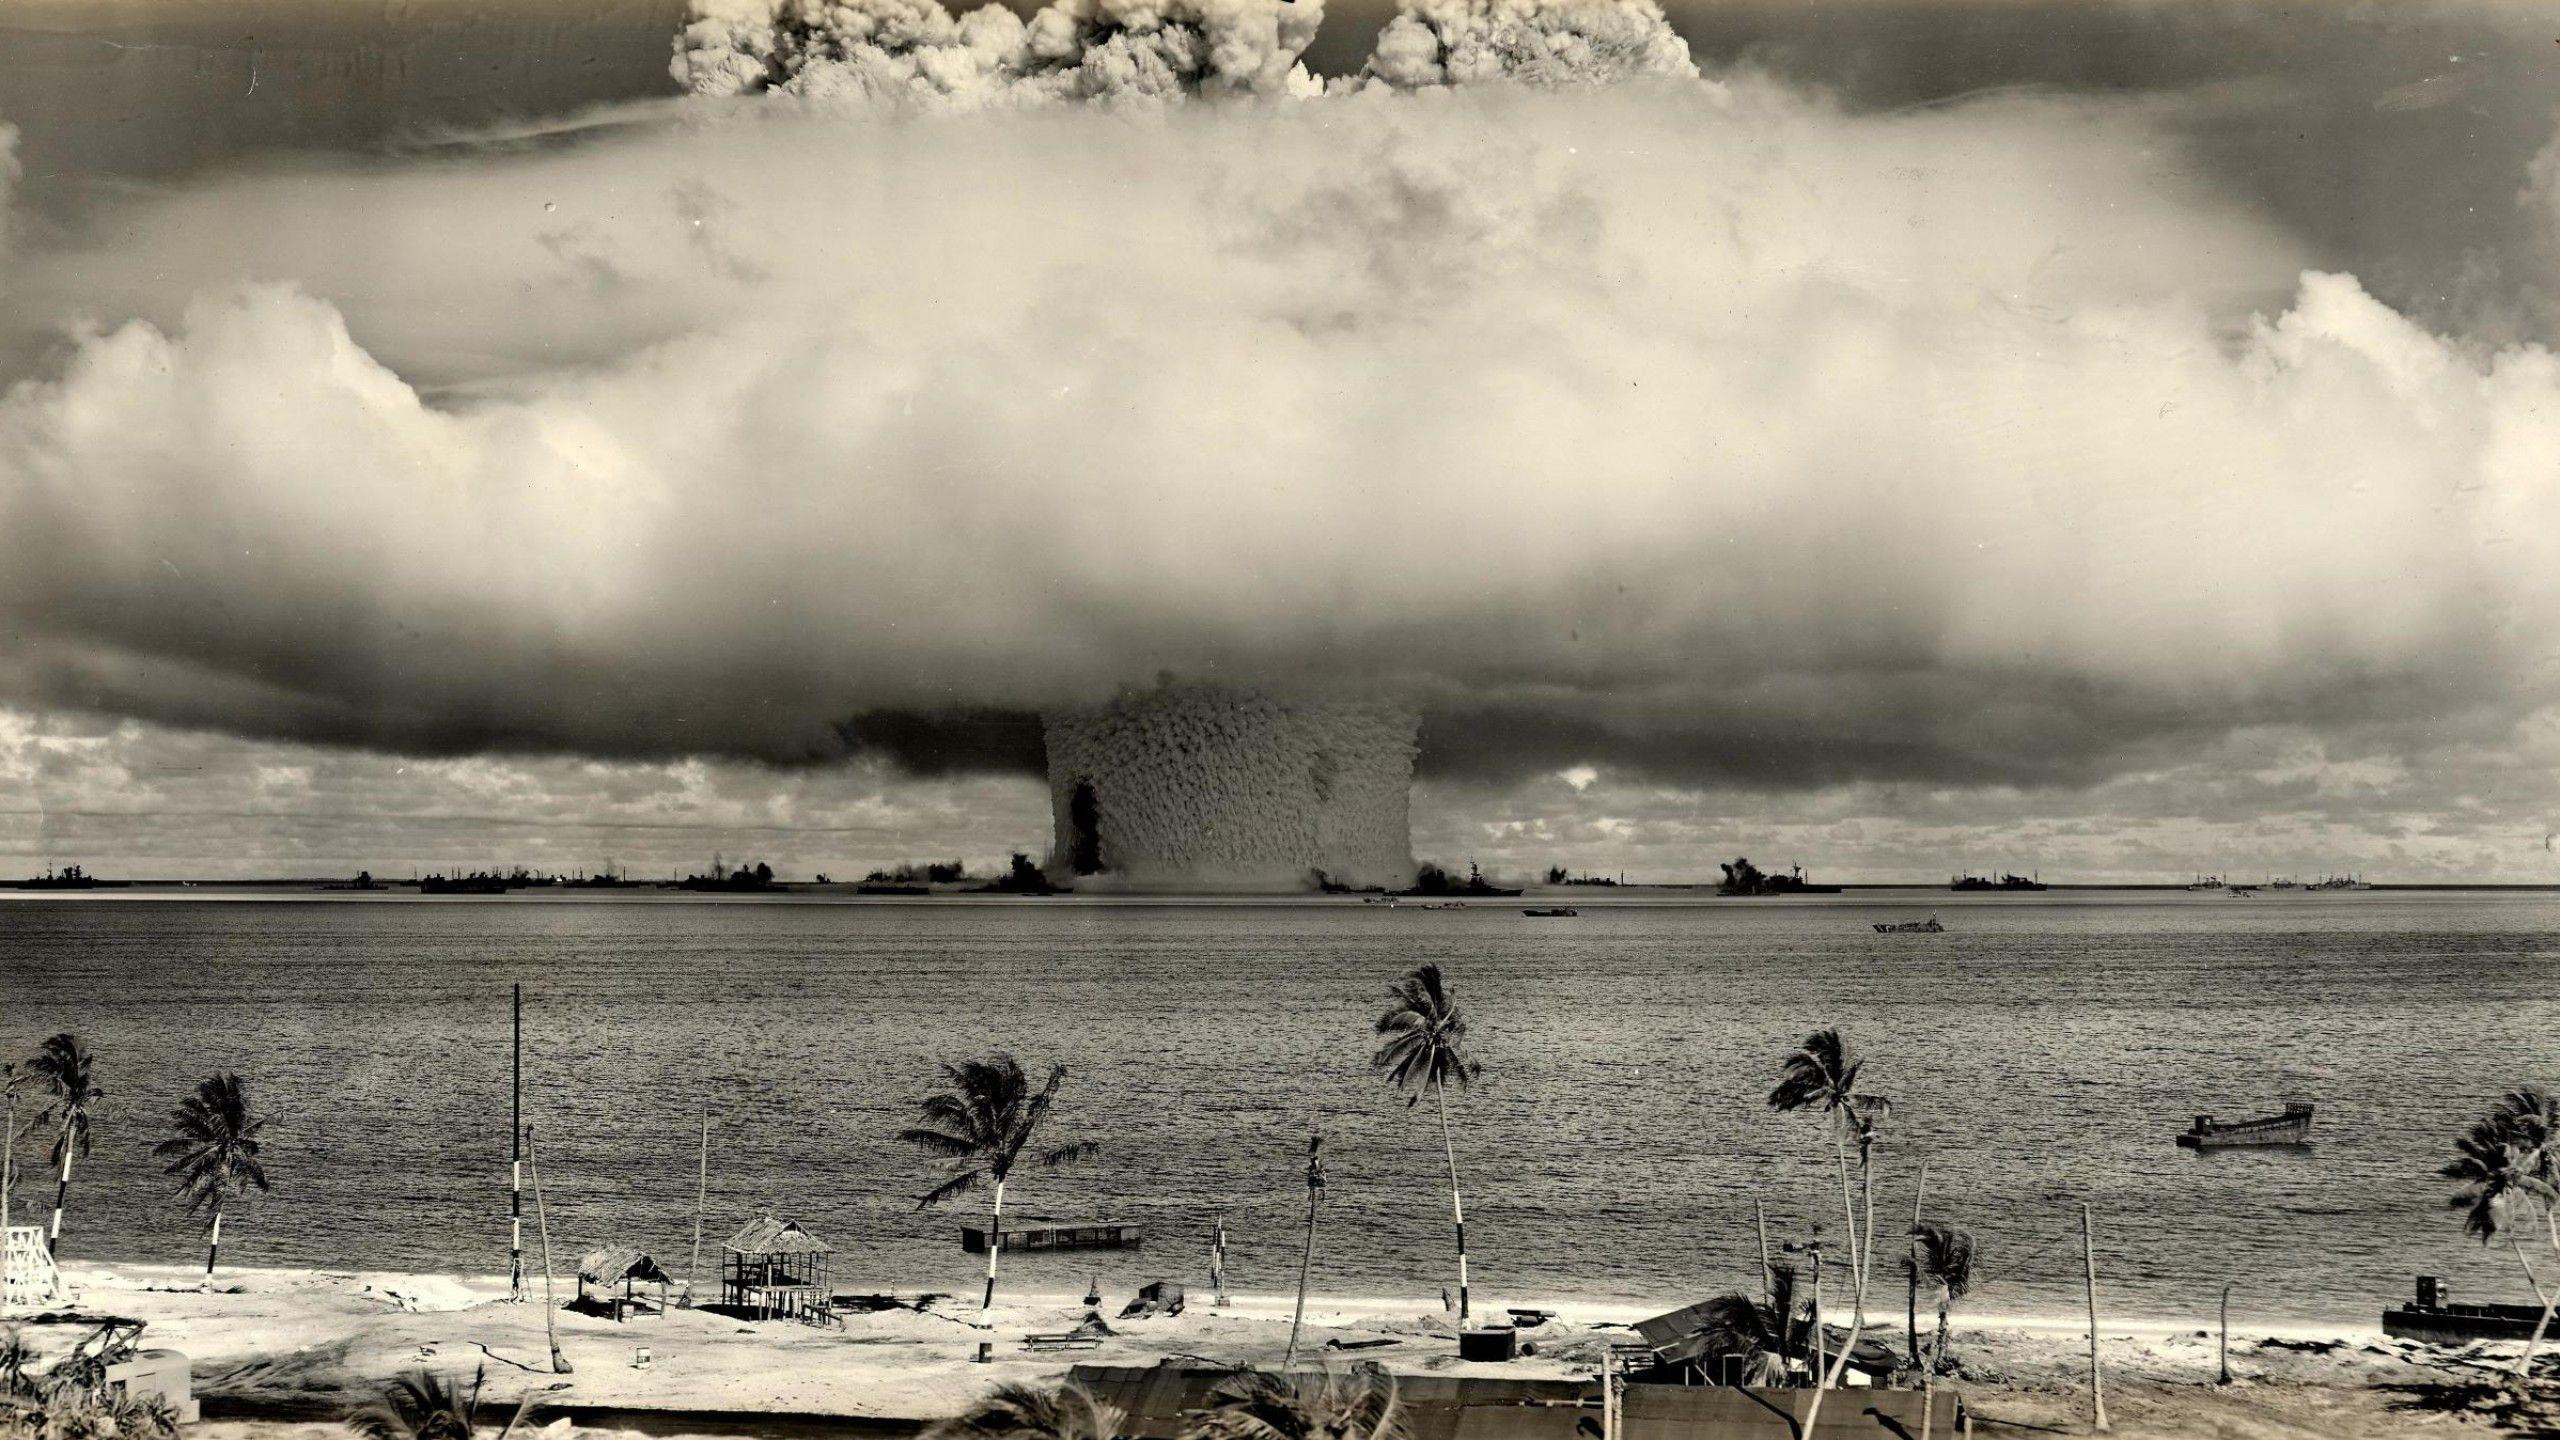 960x800 Funny Nuclear Explosions Hello 1024x768 Wallpaper Download